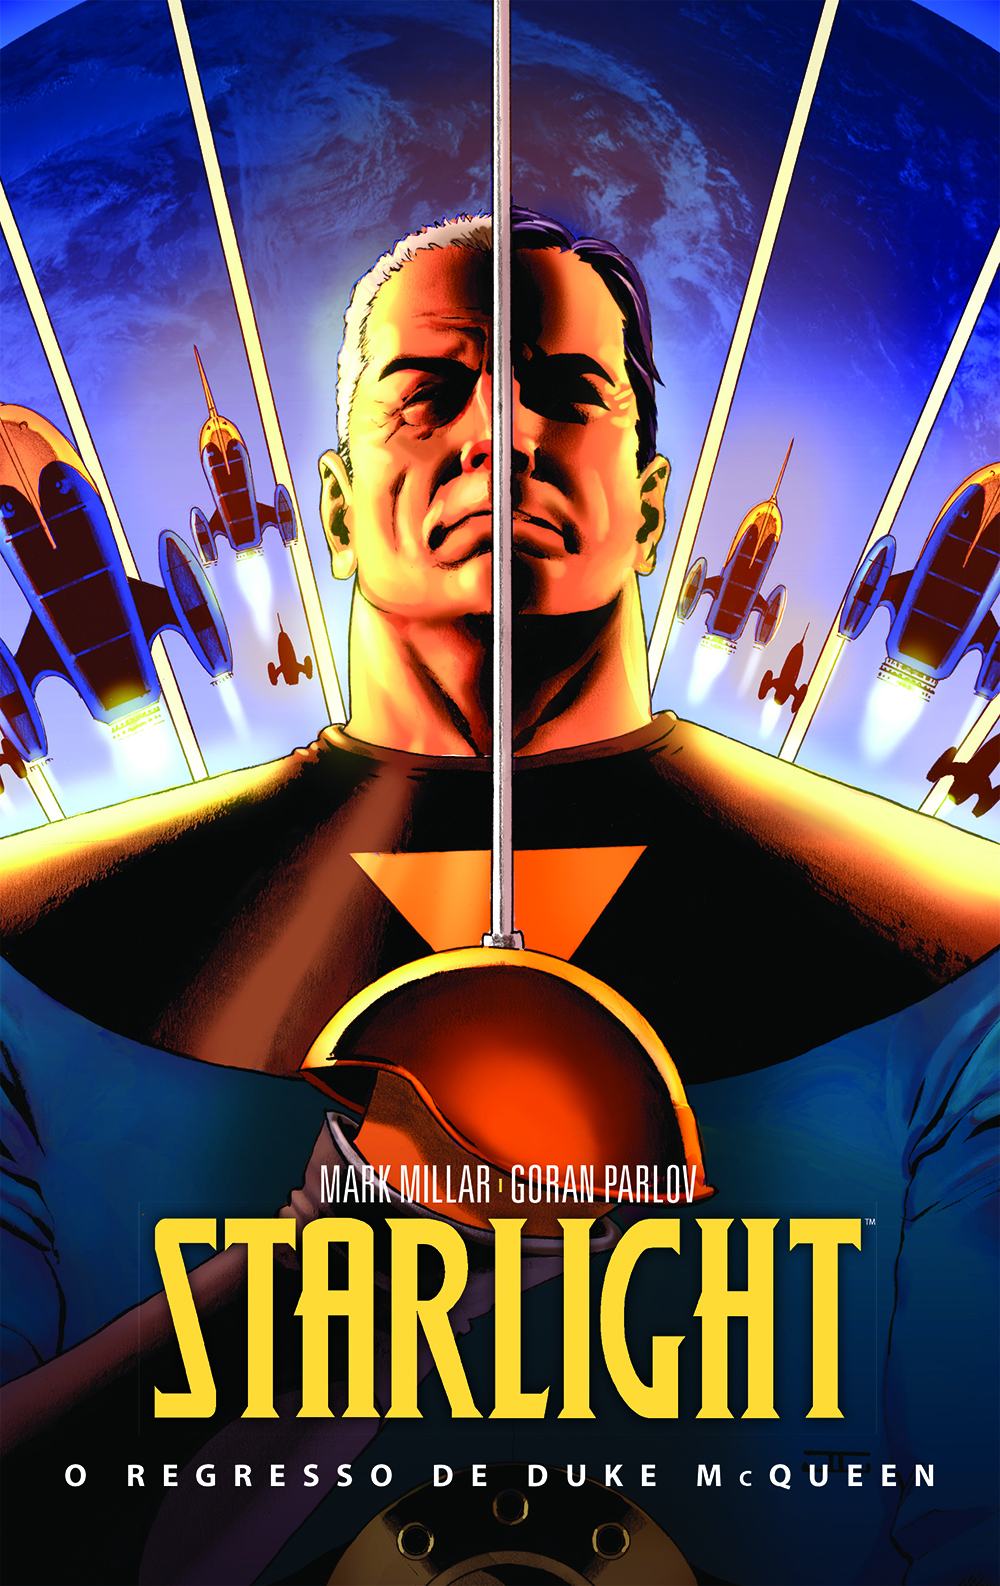 STARLIGHT: O Regresso de Duke McQueen